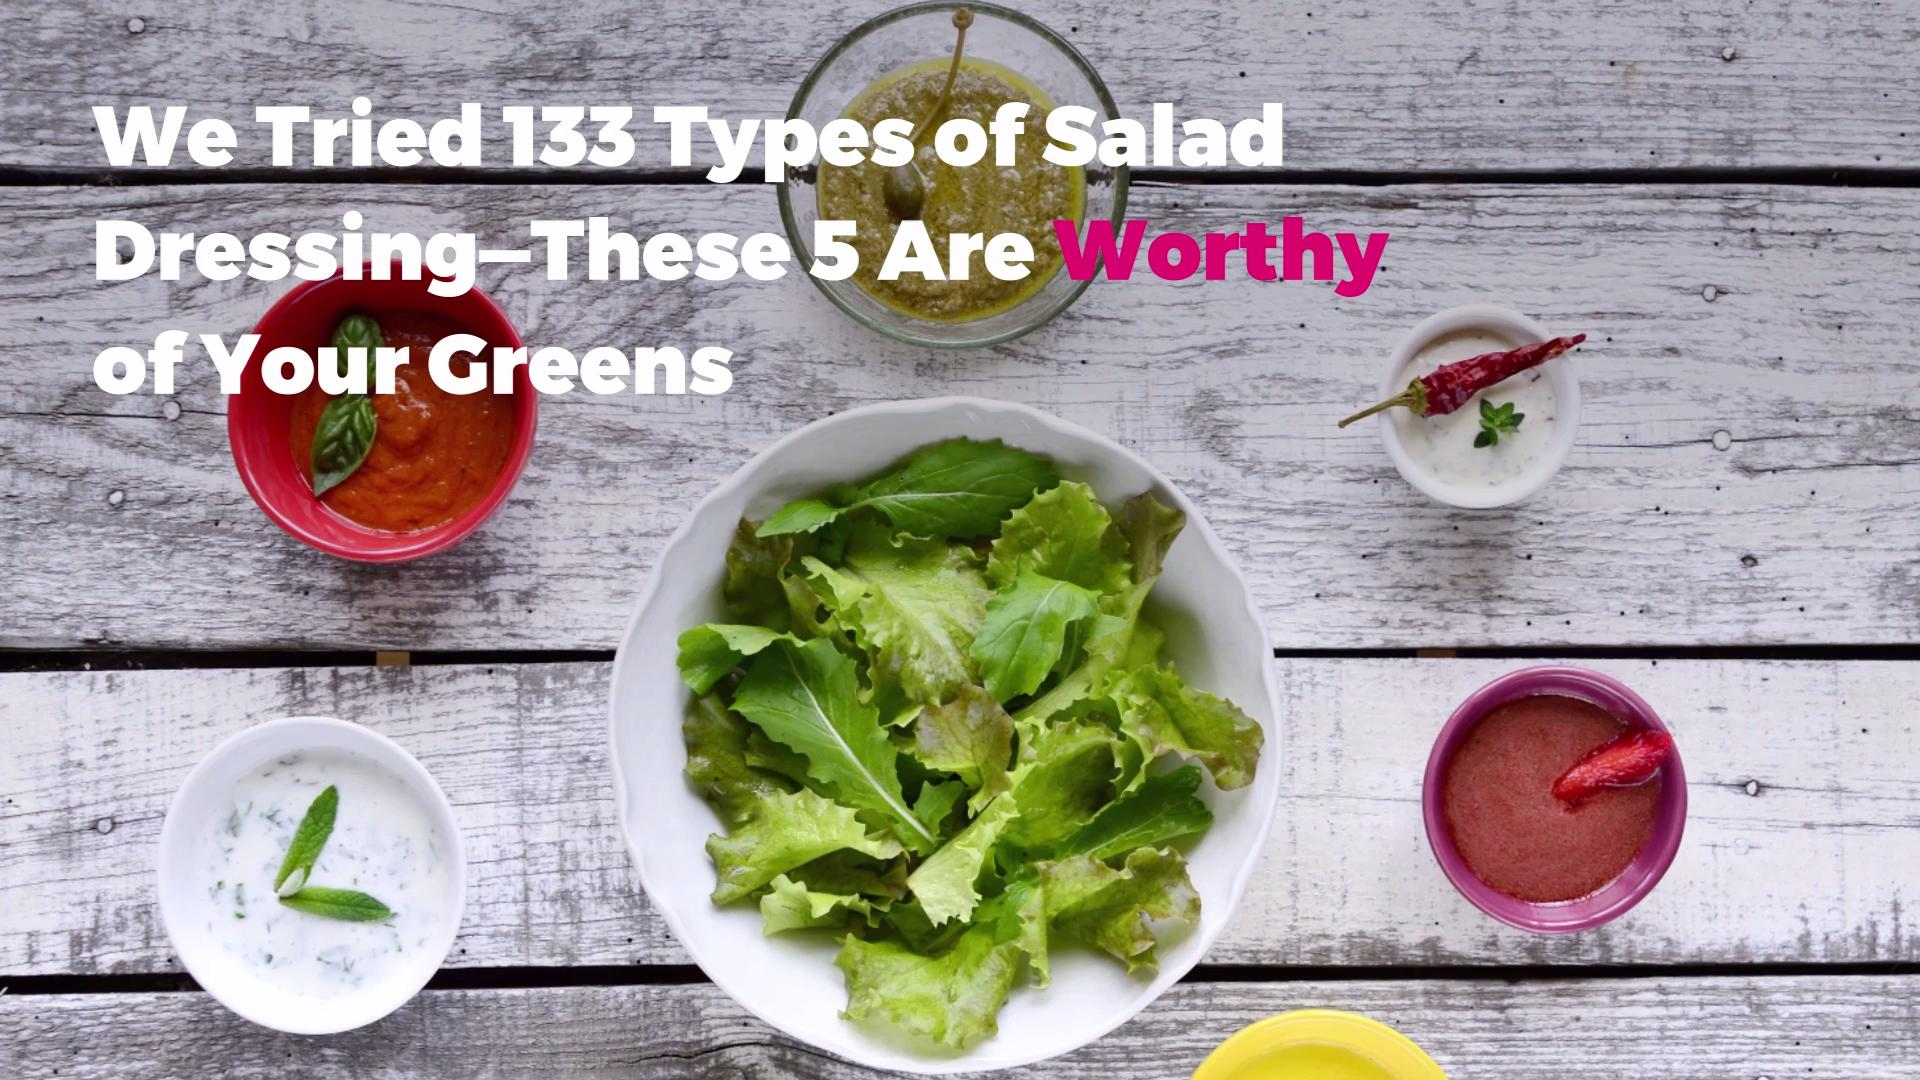 We Tried 133 Types of Salad Dressing—These 5 Are Worthy of Your Greens